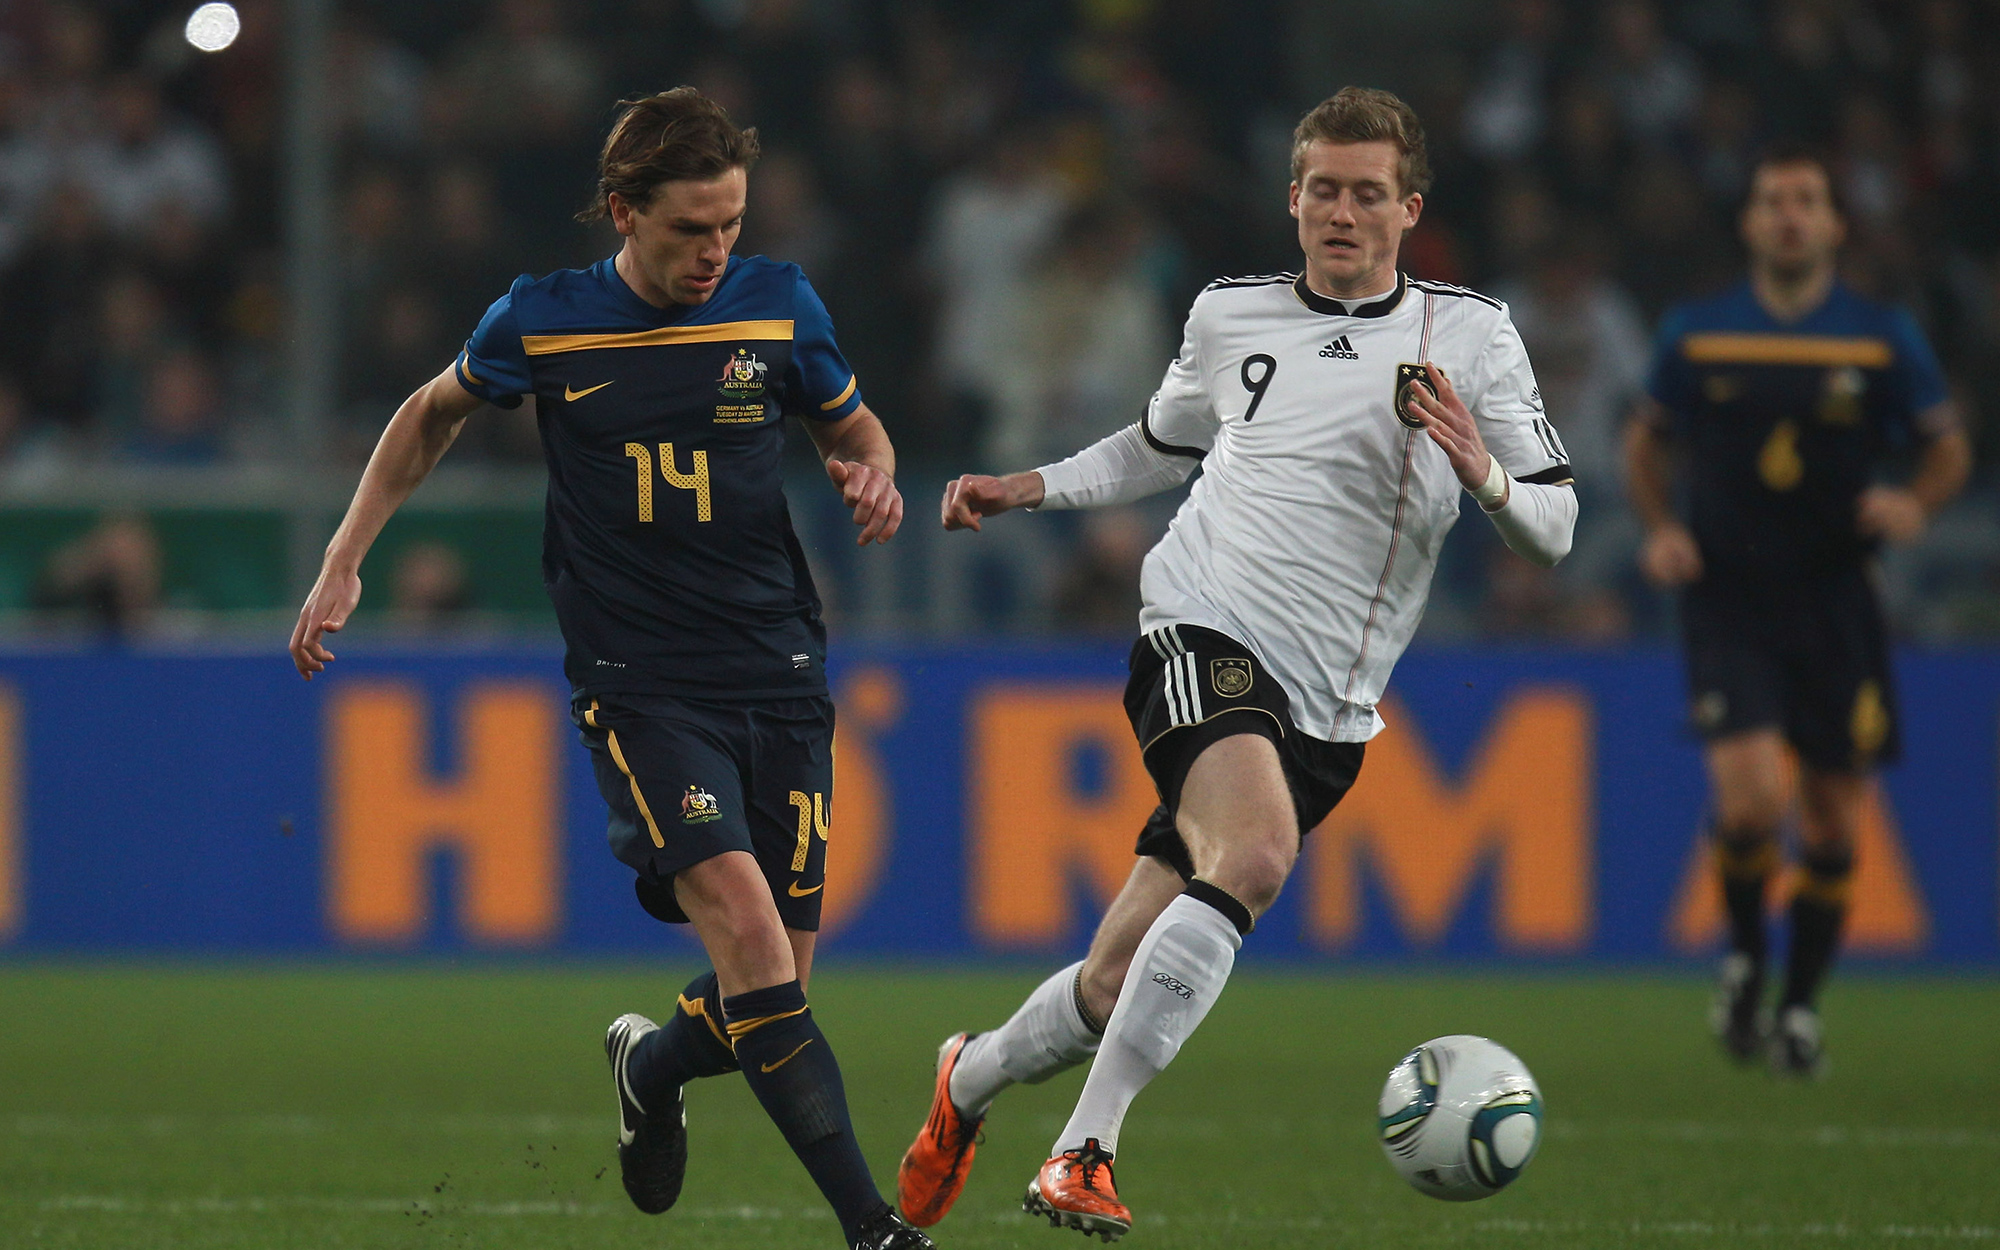 'We're determined to get one back on them': Brett Holman warns Germany ahead of friendly